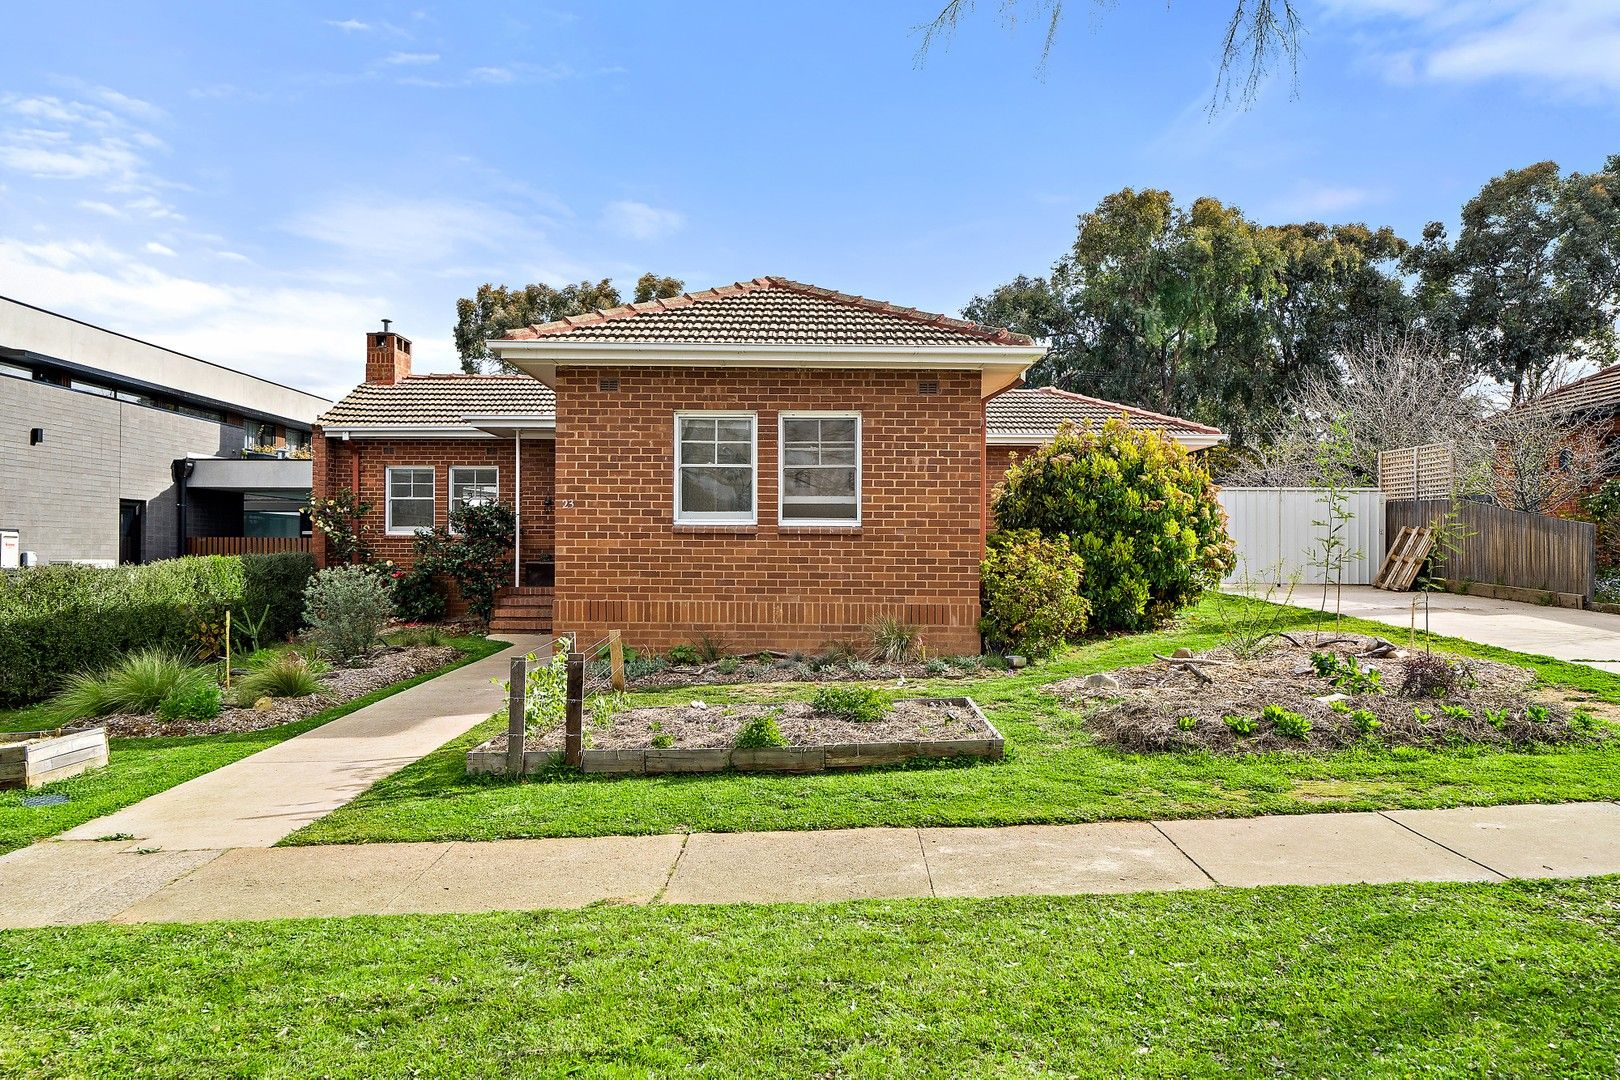 3 bedrooms House in 23 Frome Street GRIFFITH ACT, 2603